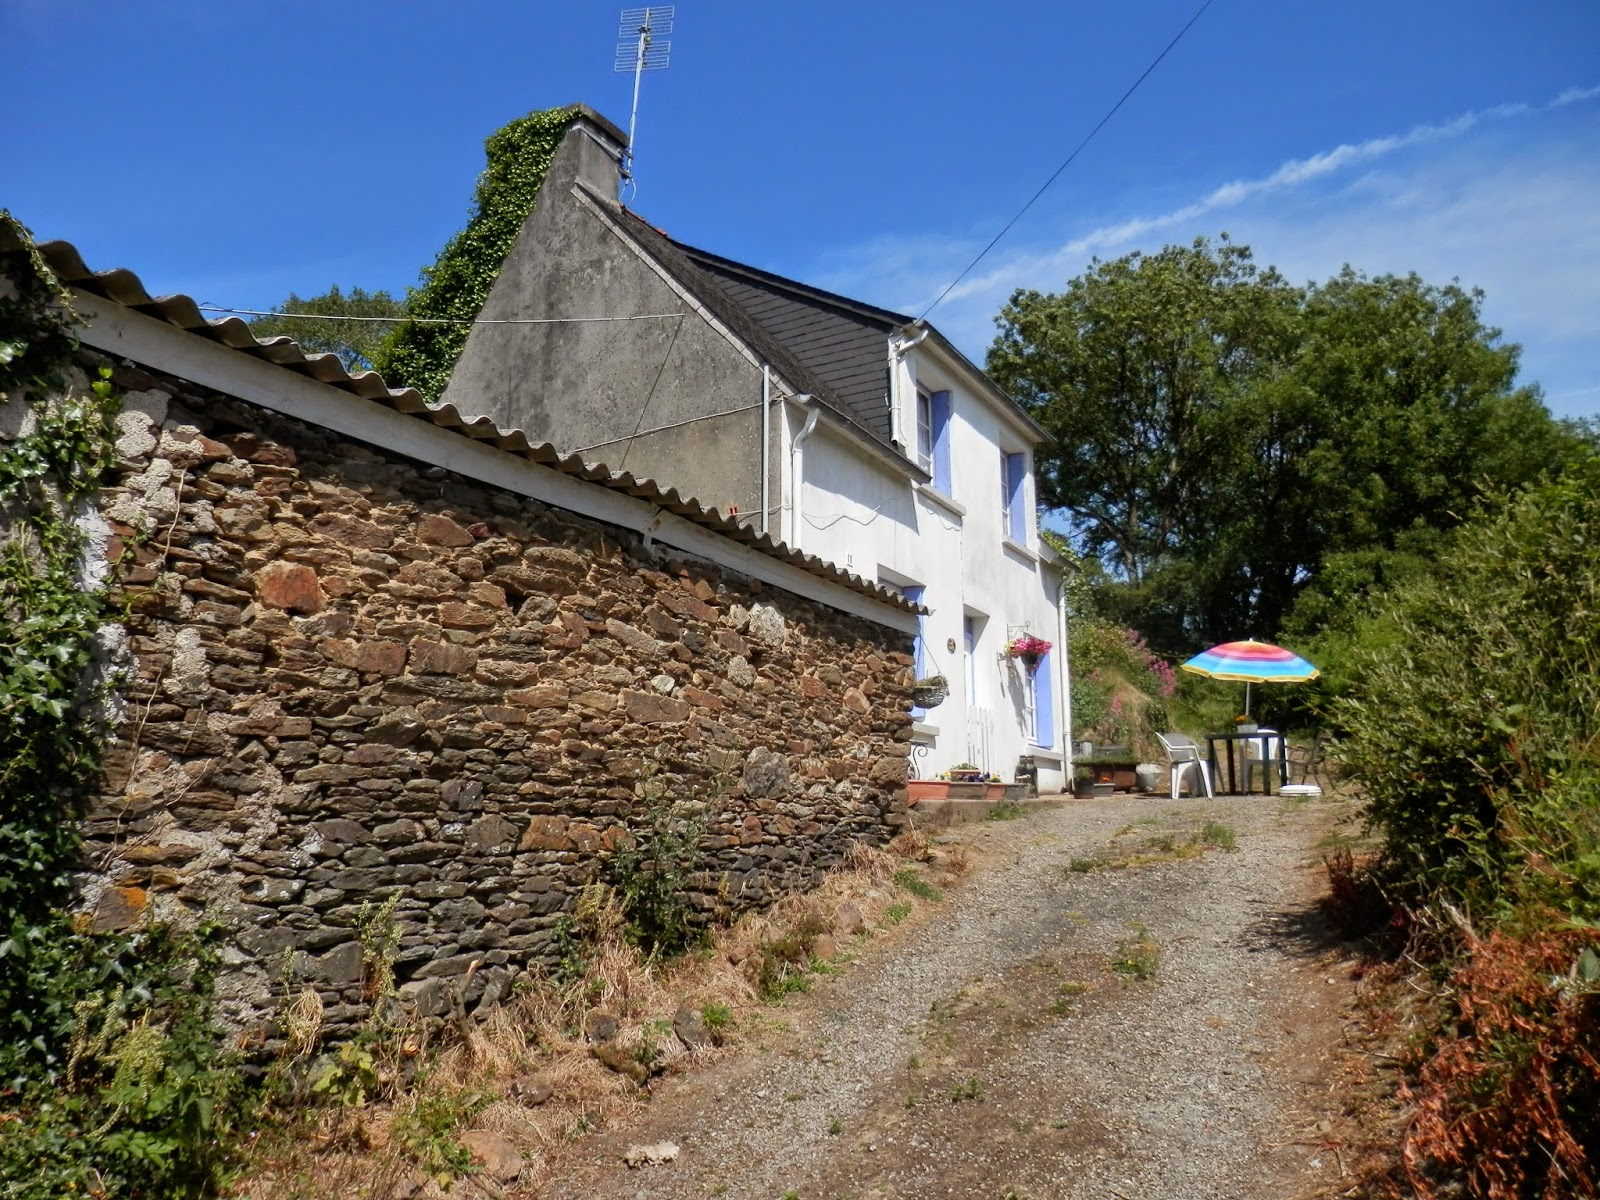 House for sale in Collorec, Brittany, france. http://jennyandjohninbrittany.blogspot.fr/